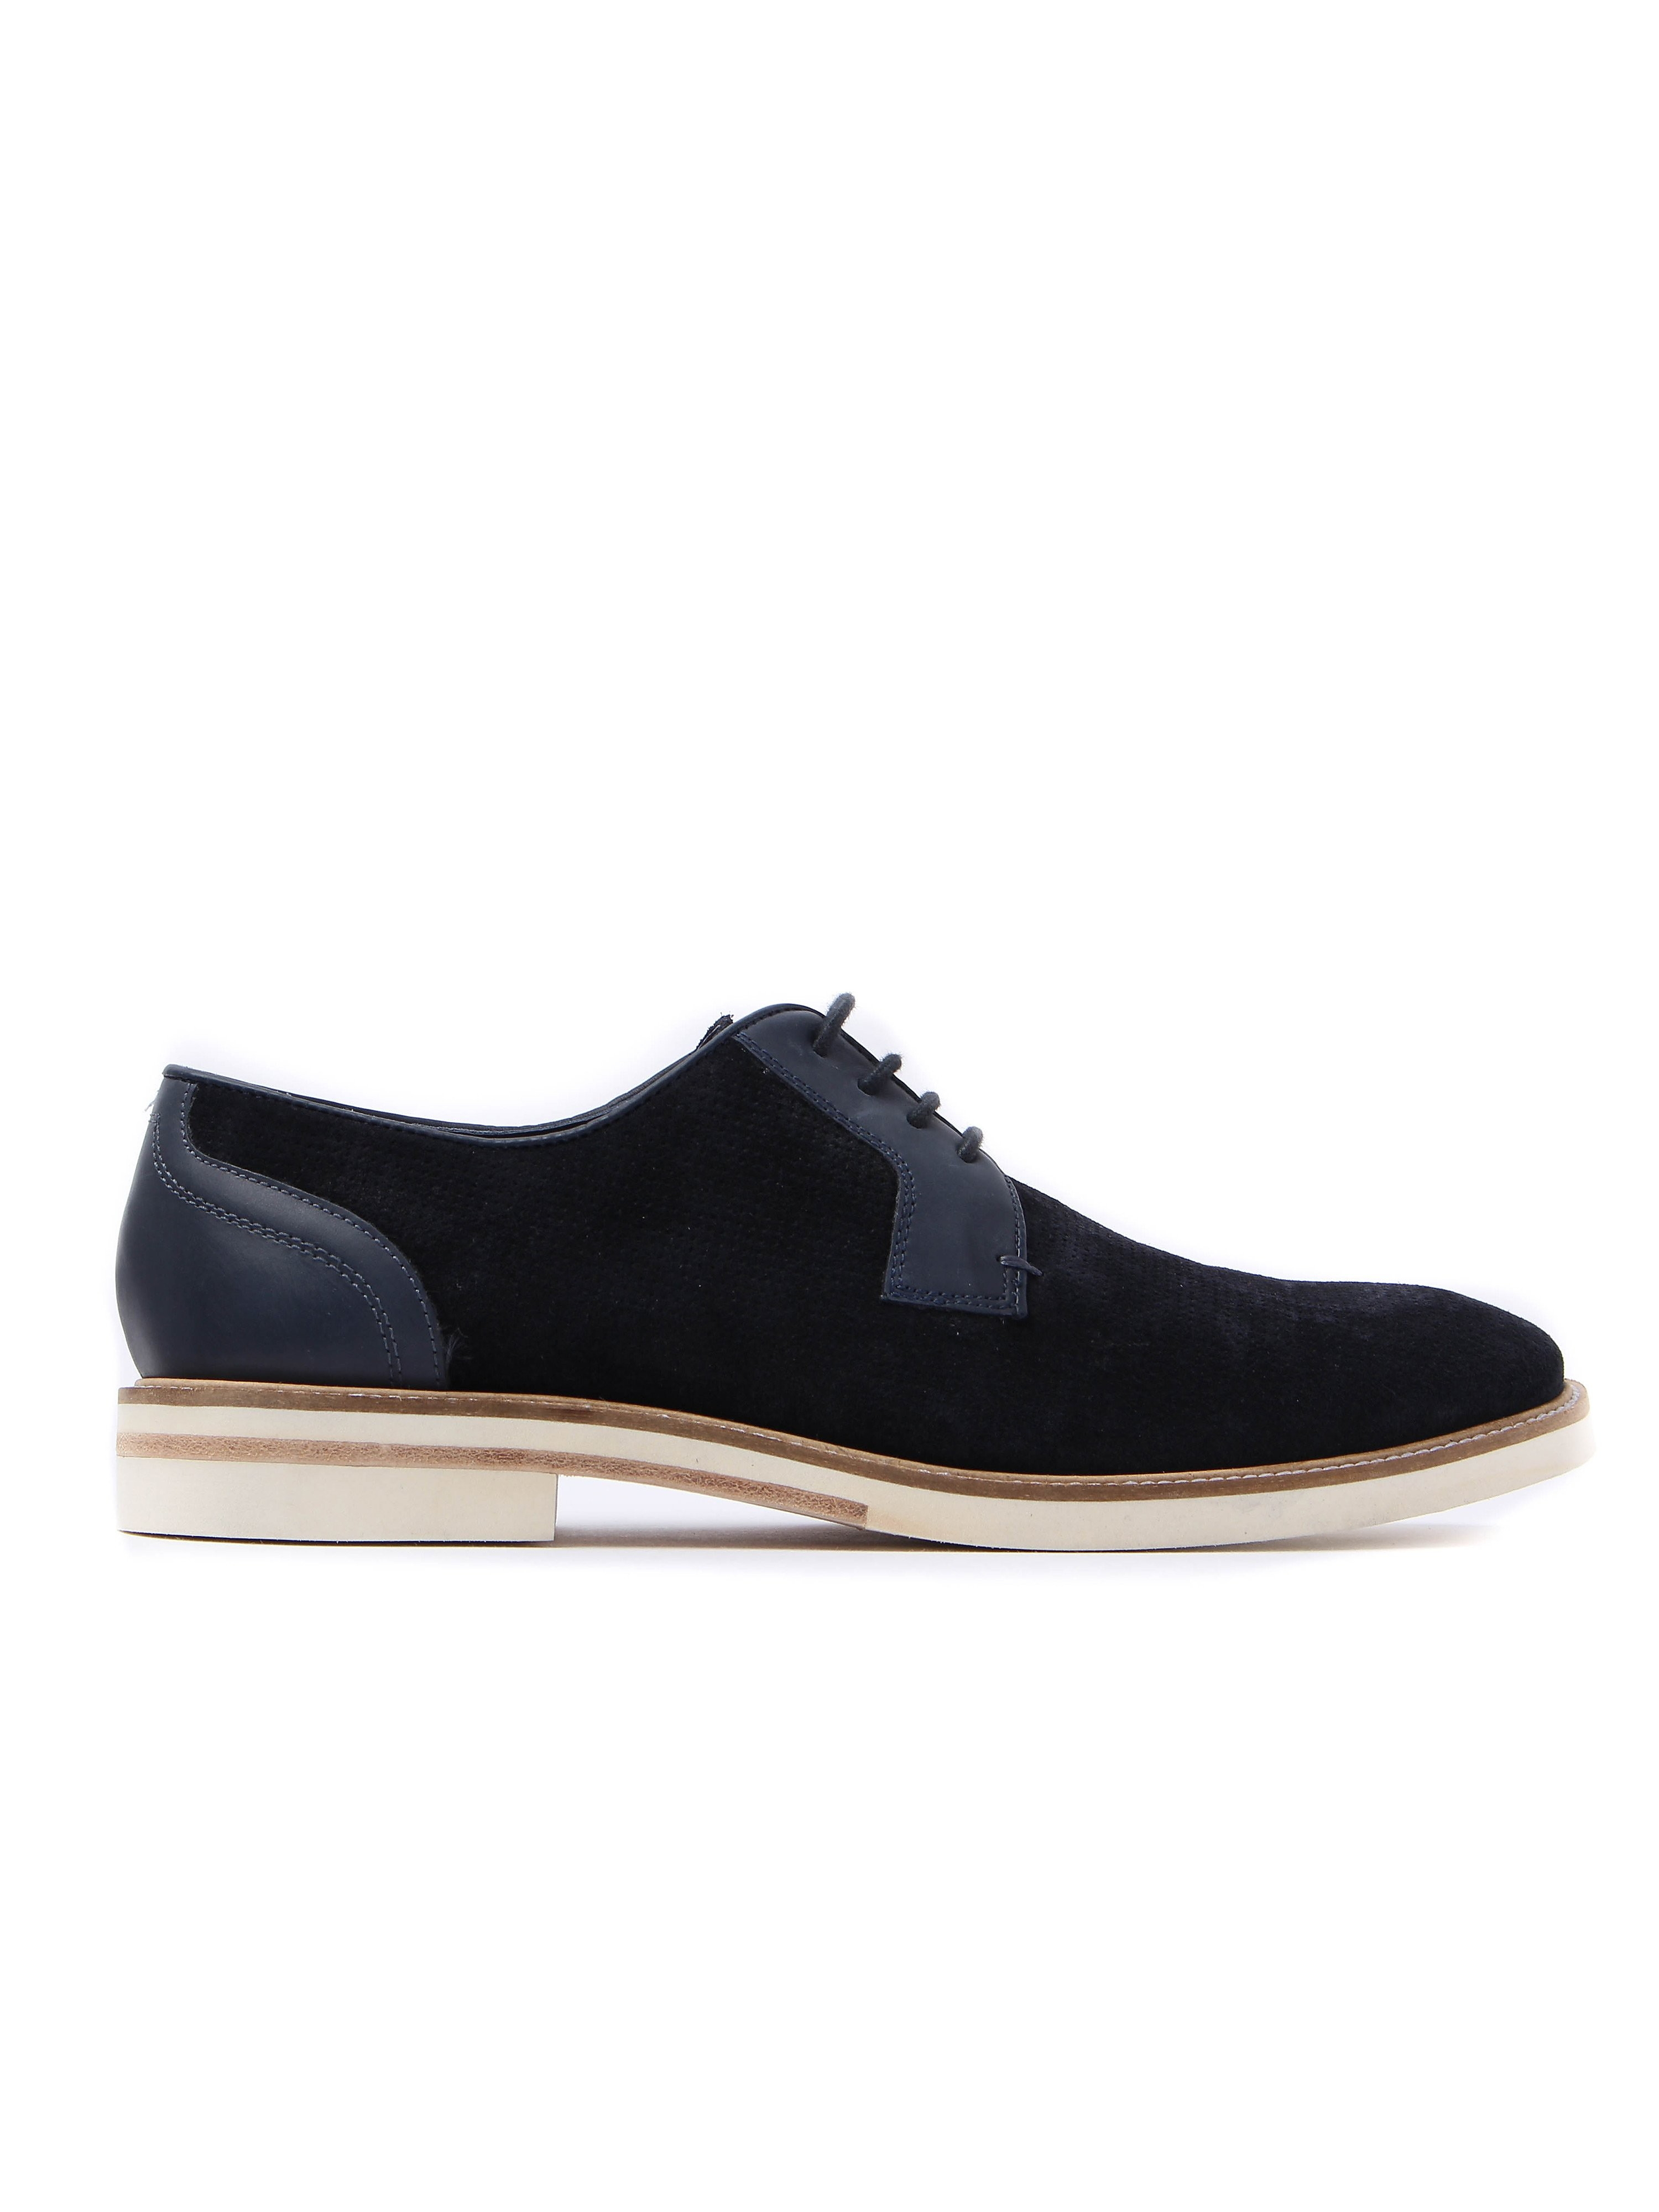 Ted Baker Men's Siablo Perforated Suede Derby Shoes - Dark Blue